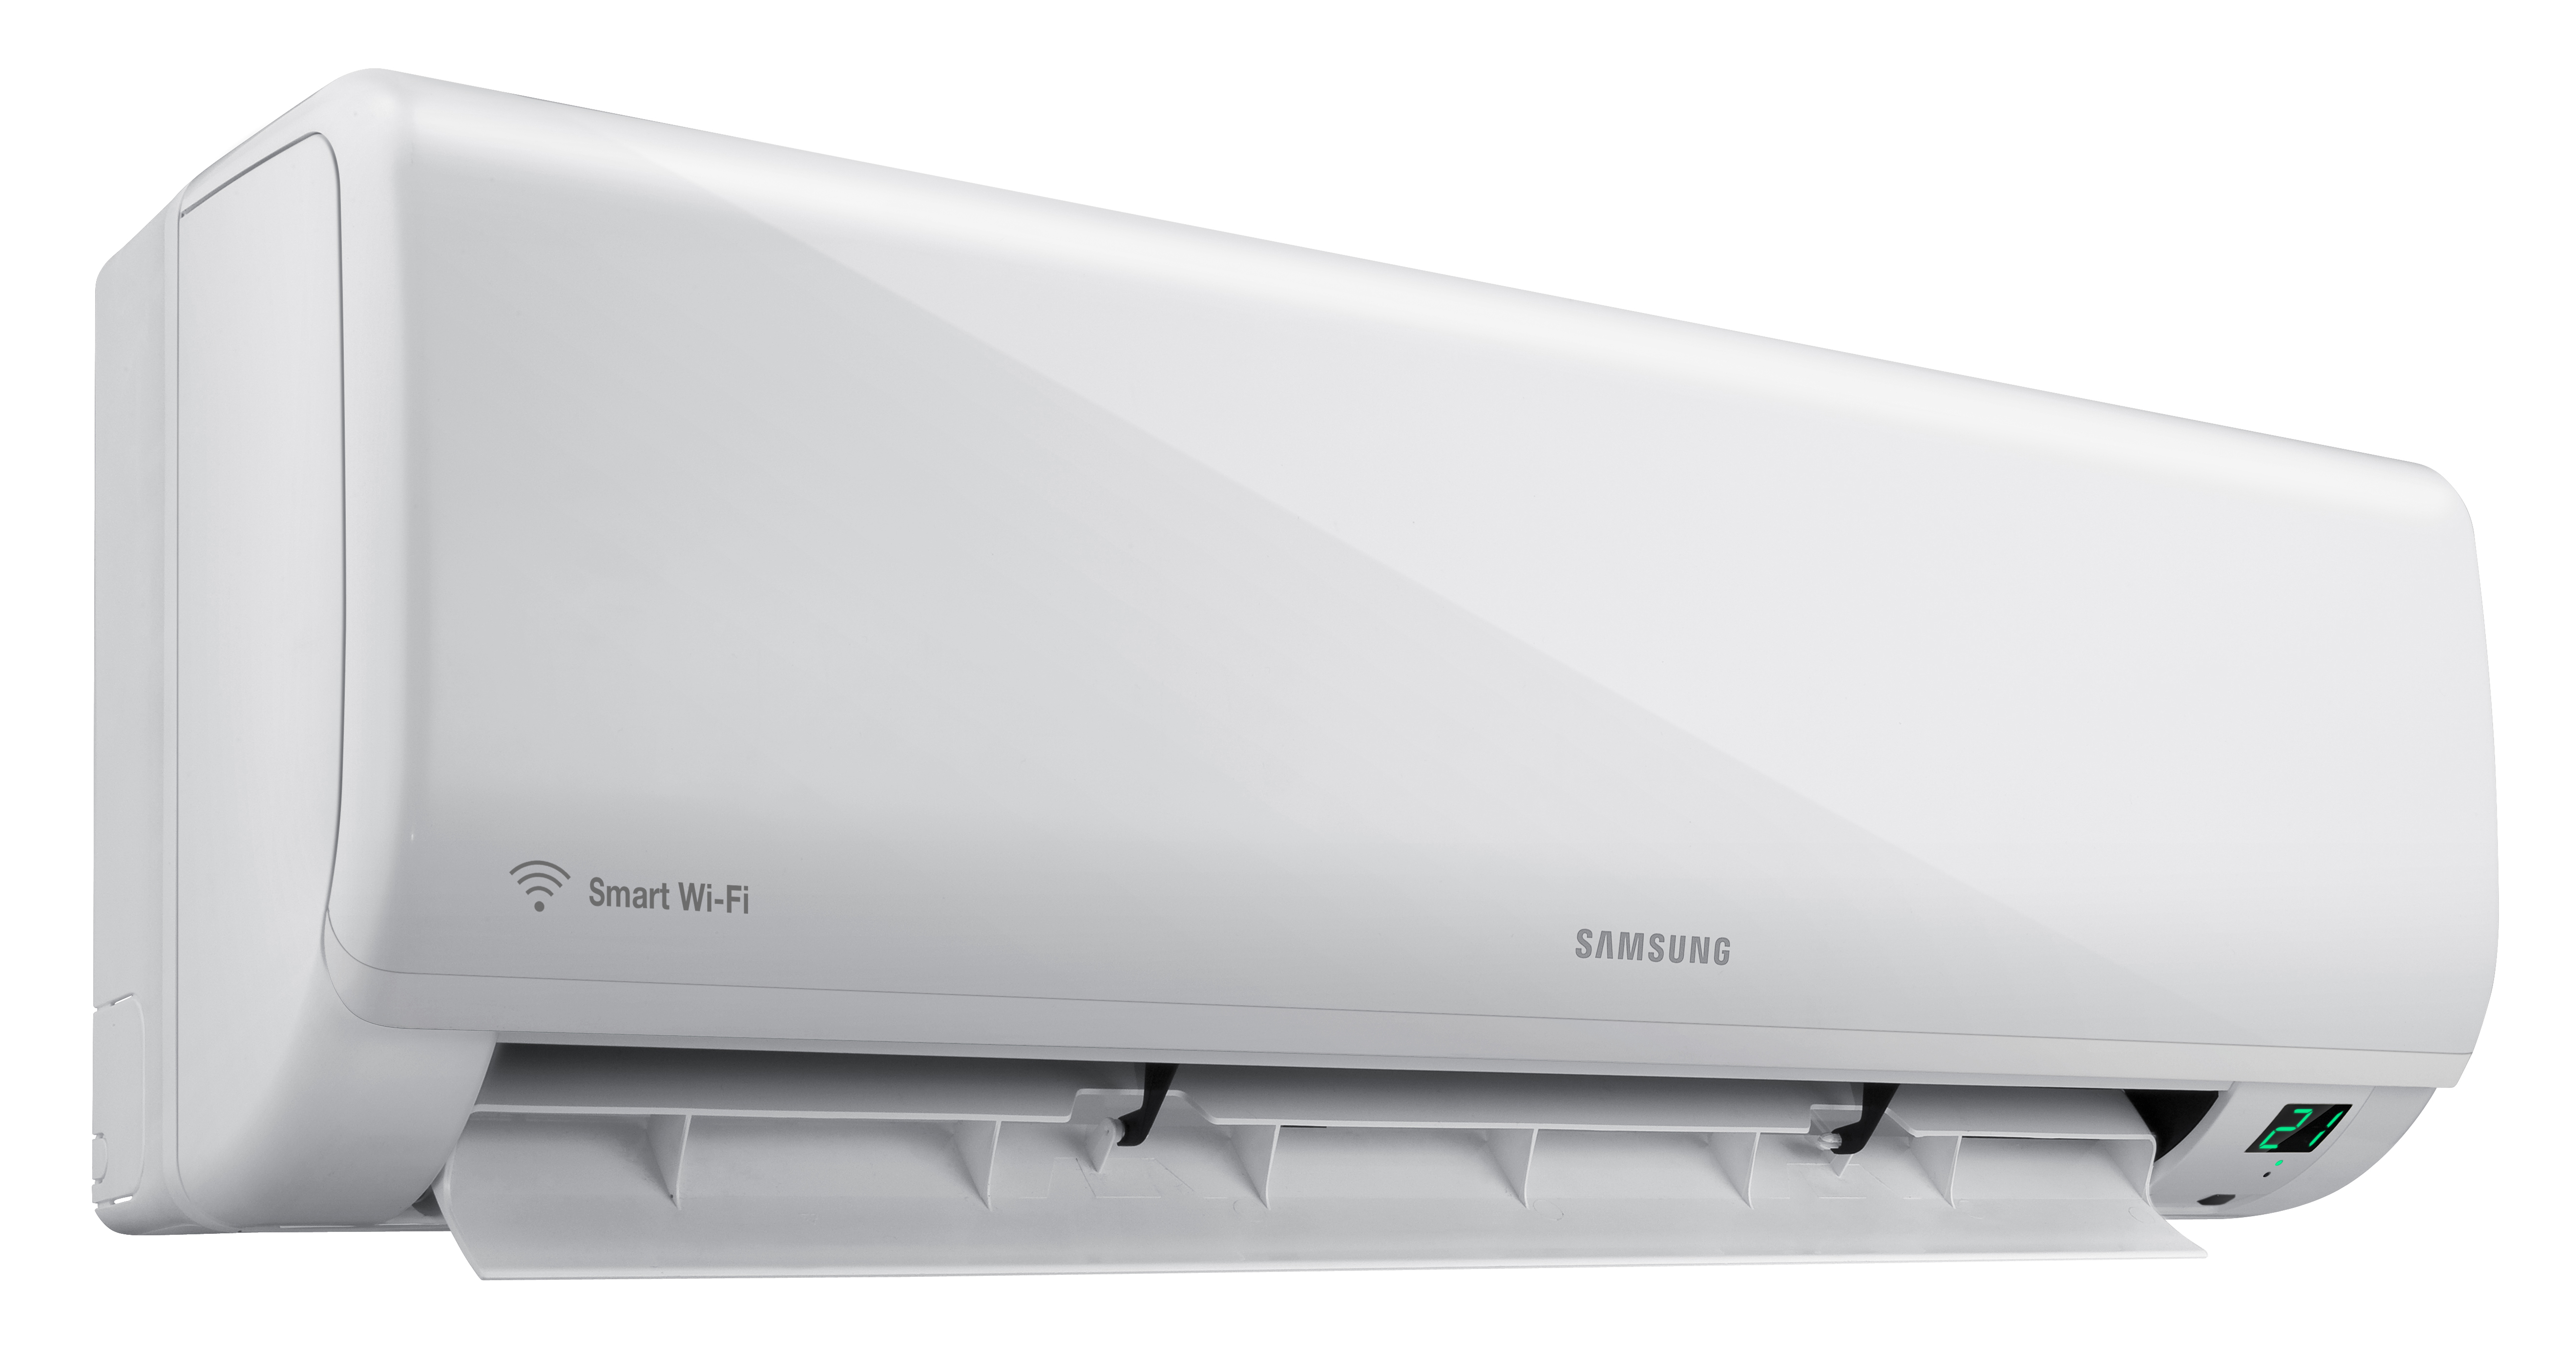 #186645 Samsung Comfort Cooling System Samsung Wiring Diagram  Most Recent 13940 Samsung Window Air Conditioners image with 5275x2807 px on helpvideos.info - Air Conditioners, Air Coolers and more